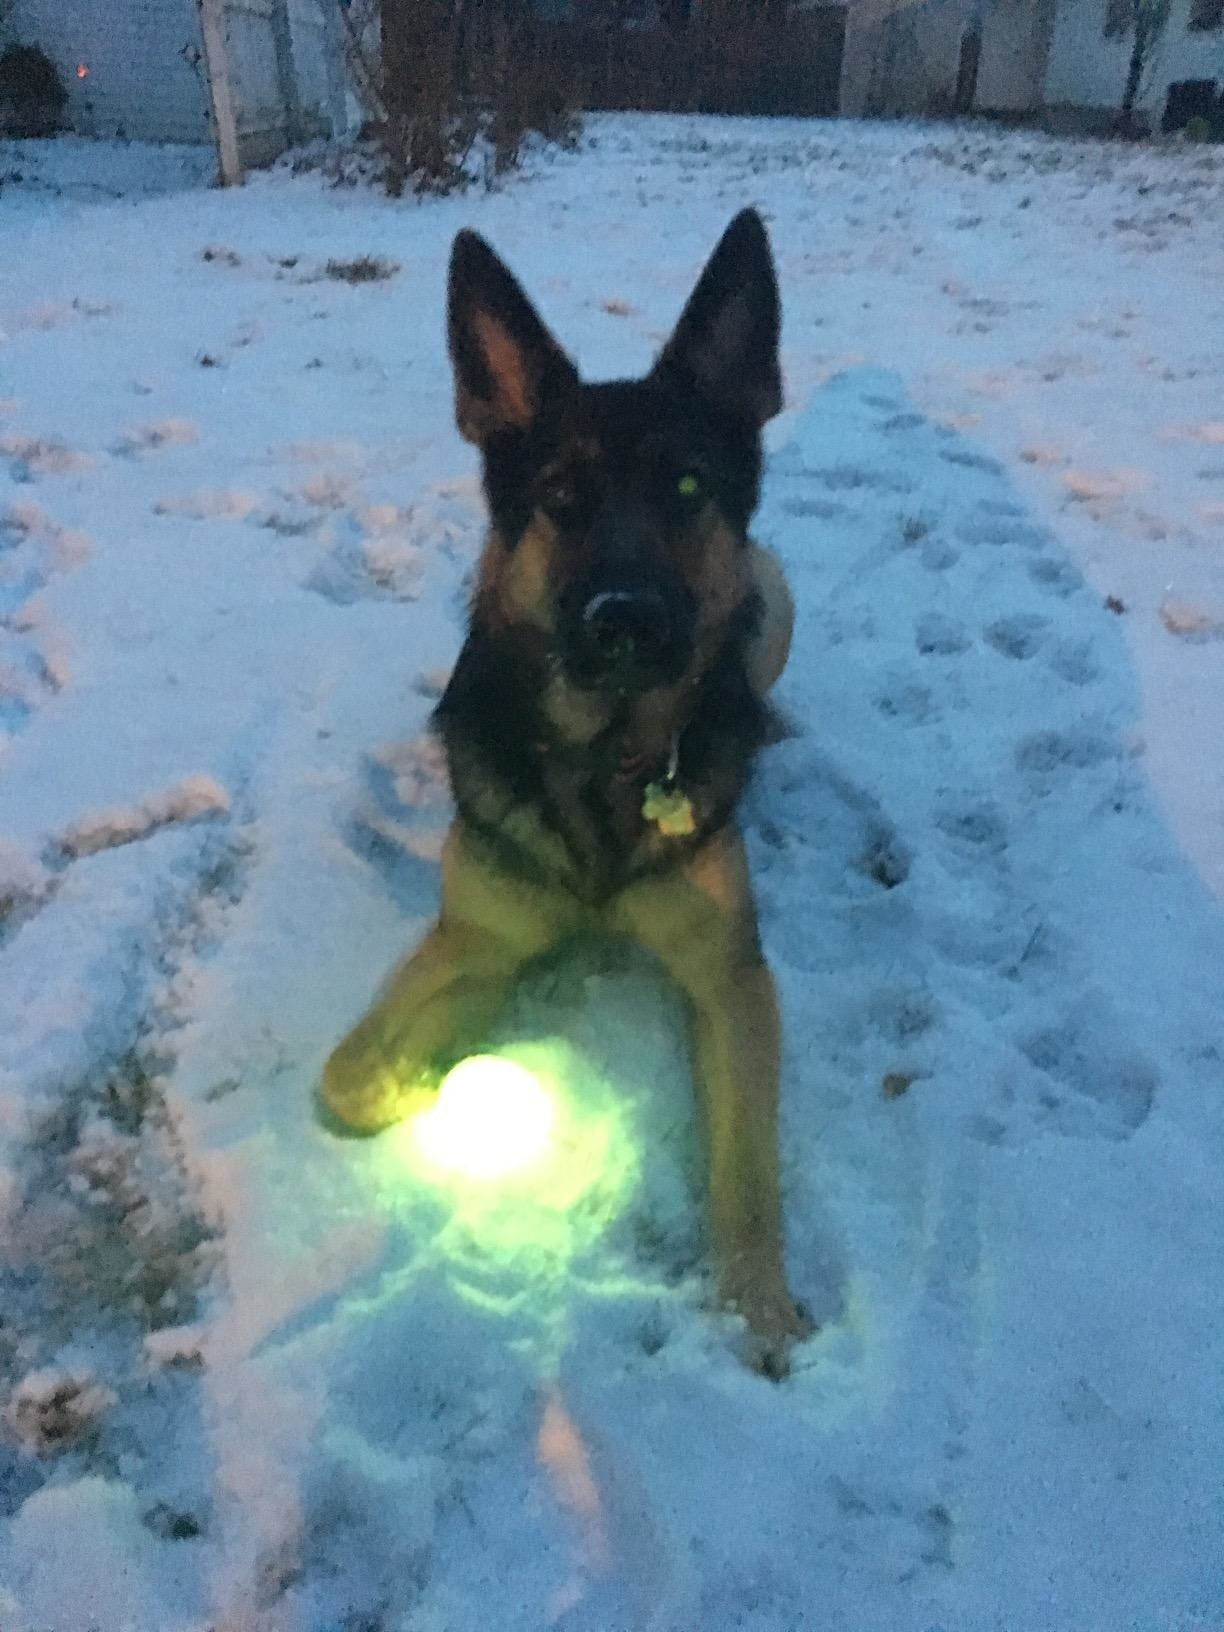 A dog plays with the ball, which lights up brightly—not a glow but actual light